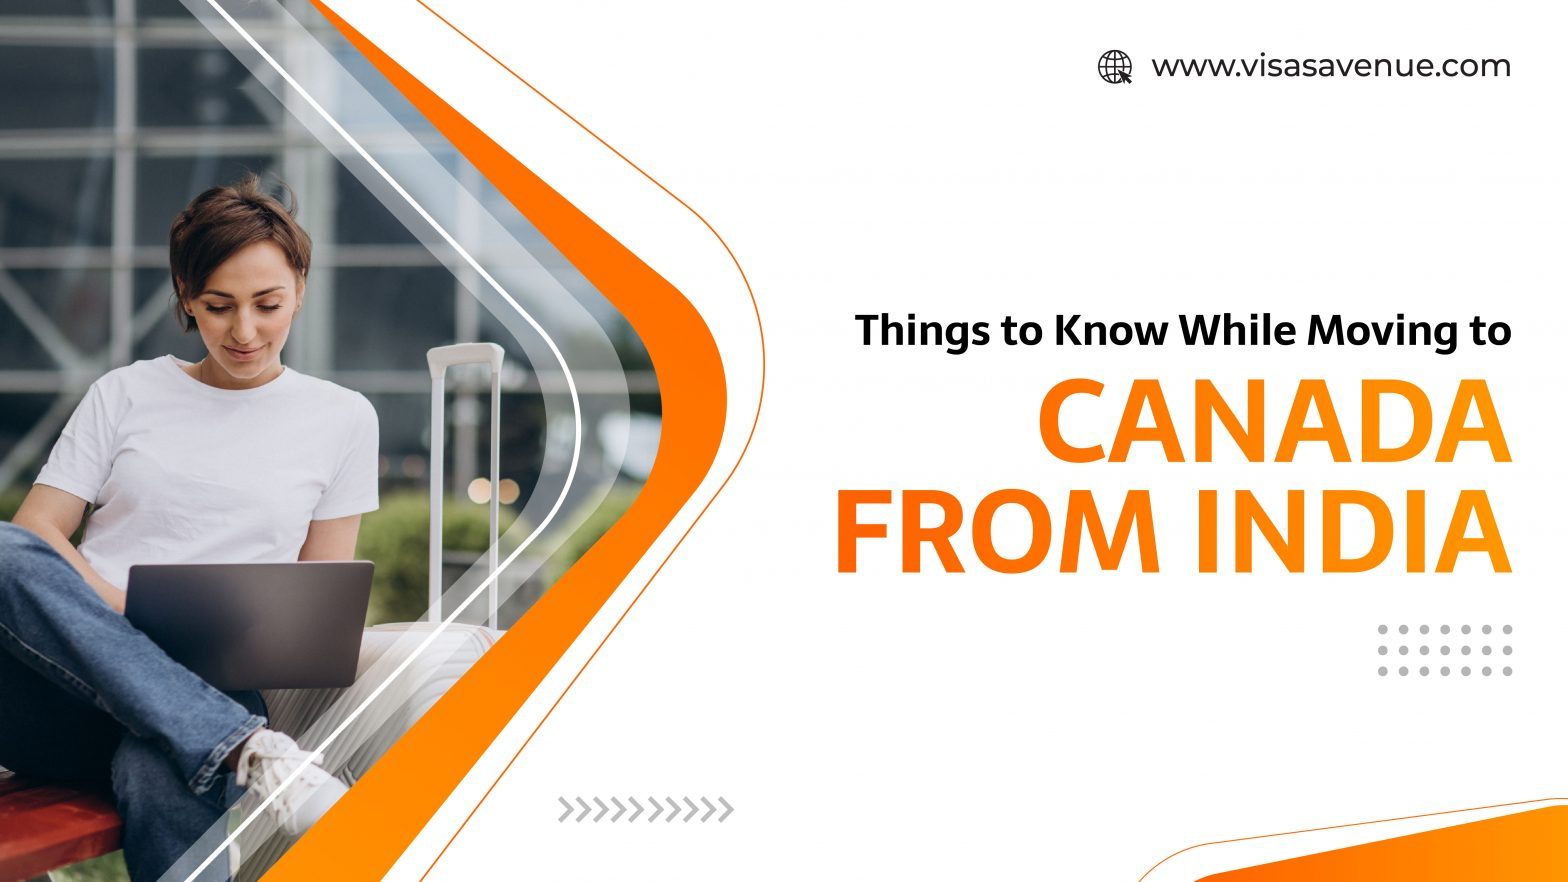 Things to Know While Moving to Canada from India